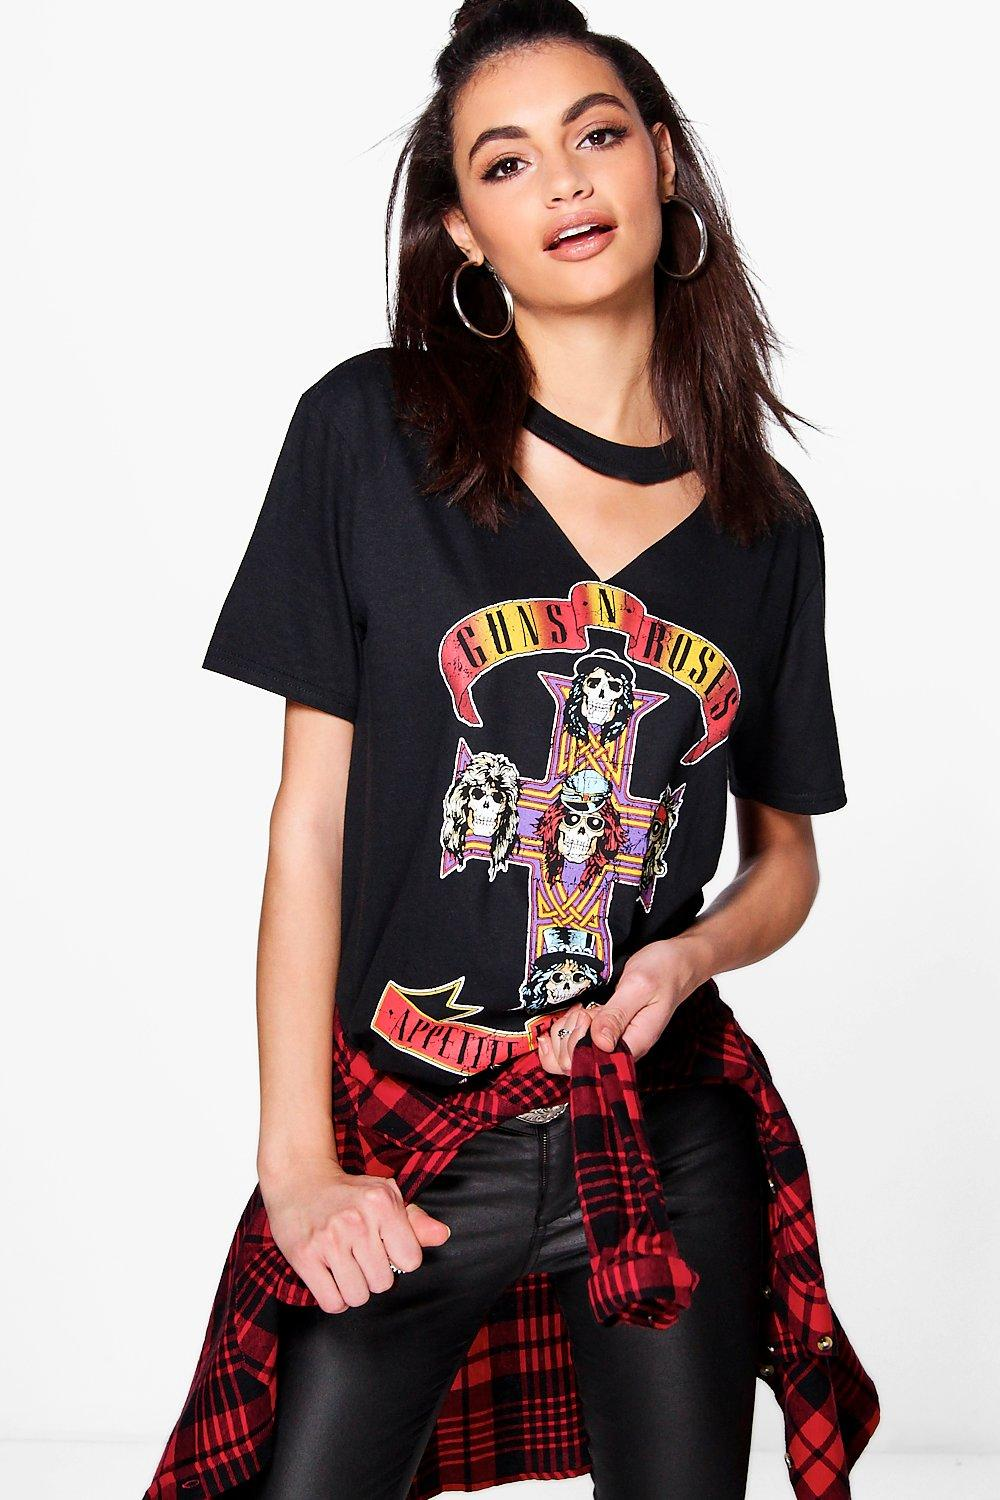 Official-Womens-Guns-n-Roses-T-Shirt-Tee-Cut-Out-Neck-Appetite-for-Destruction thumbnail 7